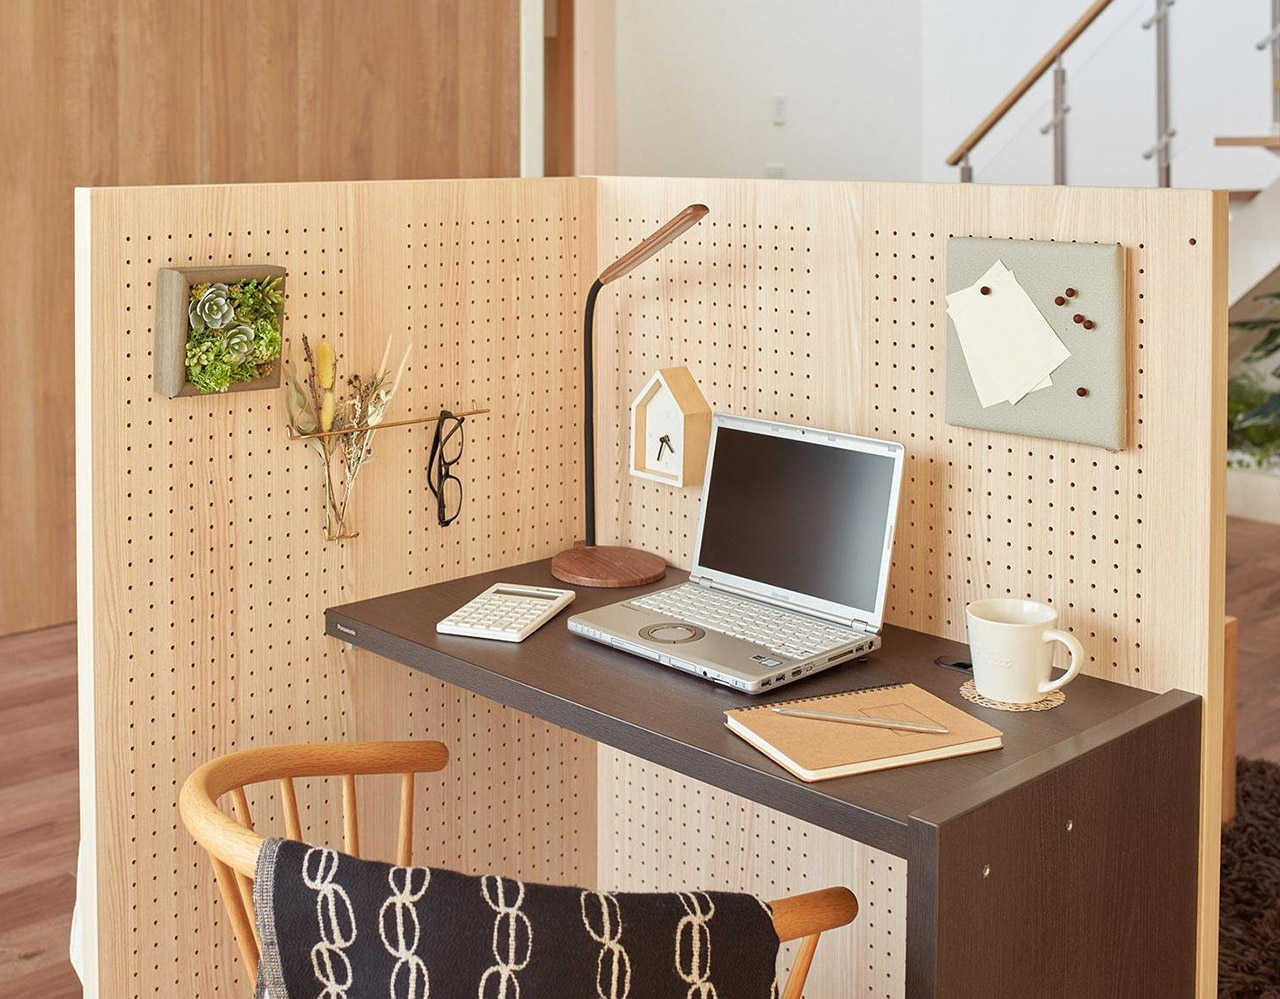 Panasonic Komoru Work Home Cubicle